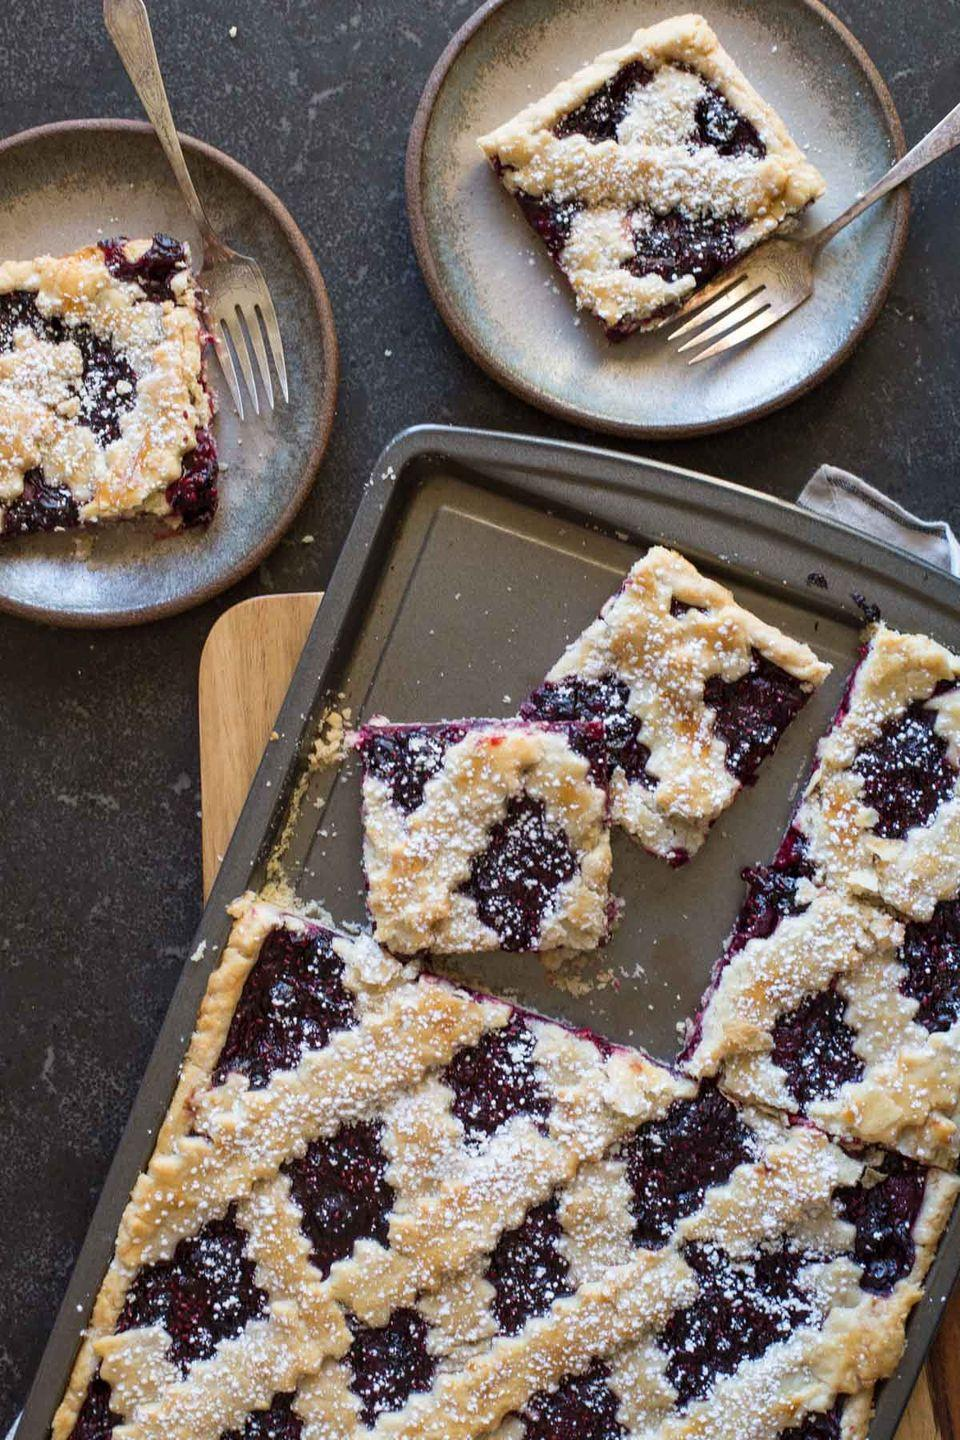 """<p>If the traditional deep-dish pie makes you nervous, try this slab pie instead. It's easy to bake in a jelly roll pan, and it feeds a crowd!</p><p><strong>Get the recipe at <a href=""""https://lovelylittlekitchen.com/triple-berry-slab-pie/"""" rel=""""nofollow noopener"""" target=""""_blank"""" data-ylk=""""slk:Lovely Little Kitchen"""" class=""""link rapid-noclick-resp"""">Lovely Little Kitchen</a>. </strong></p><p><a class=""""link rapid-noclick-resp"""" href=""""https://go.redirectingat.com?id=74968X1596630&url=https%3A%2F%2Fwww.walmart.com%2Fsearch%2F%3Fquery%3Djelly%2Broll%2Bpan&sref=https%3A%2F%2Fwww.thepioneerwoman.com%2Ffood-cooking%2Fmeals-menus%2Fg36558208%2Fsummer-pie-recipes%2F"""" rel=""""nofollow noopener"""" target=""""_blank"""" data-ylk=""""slk:SHOP JELLY ROLL PANS"""">SHOP JELLY ROLL PANS</a></p>"""